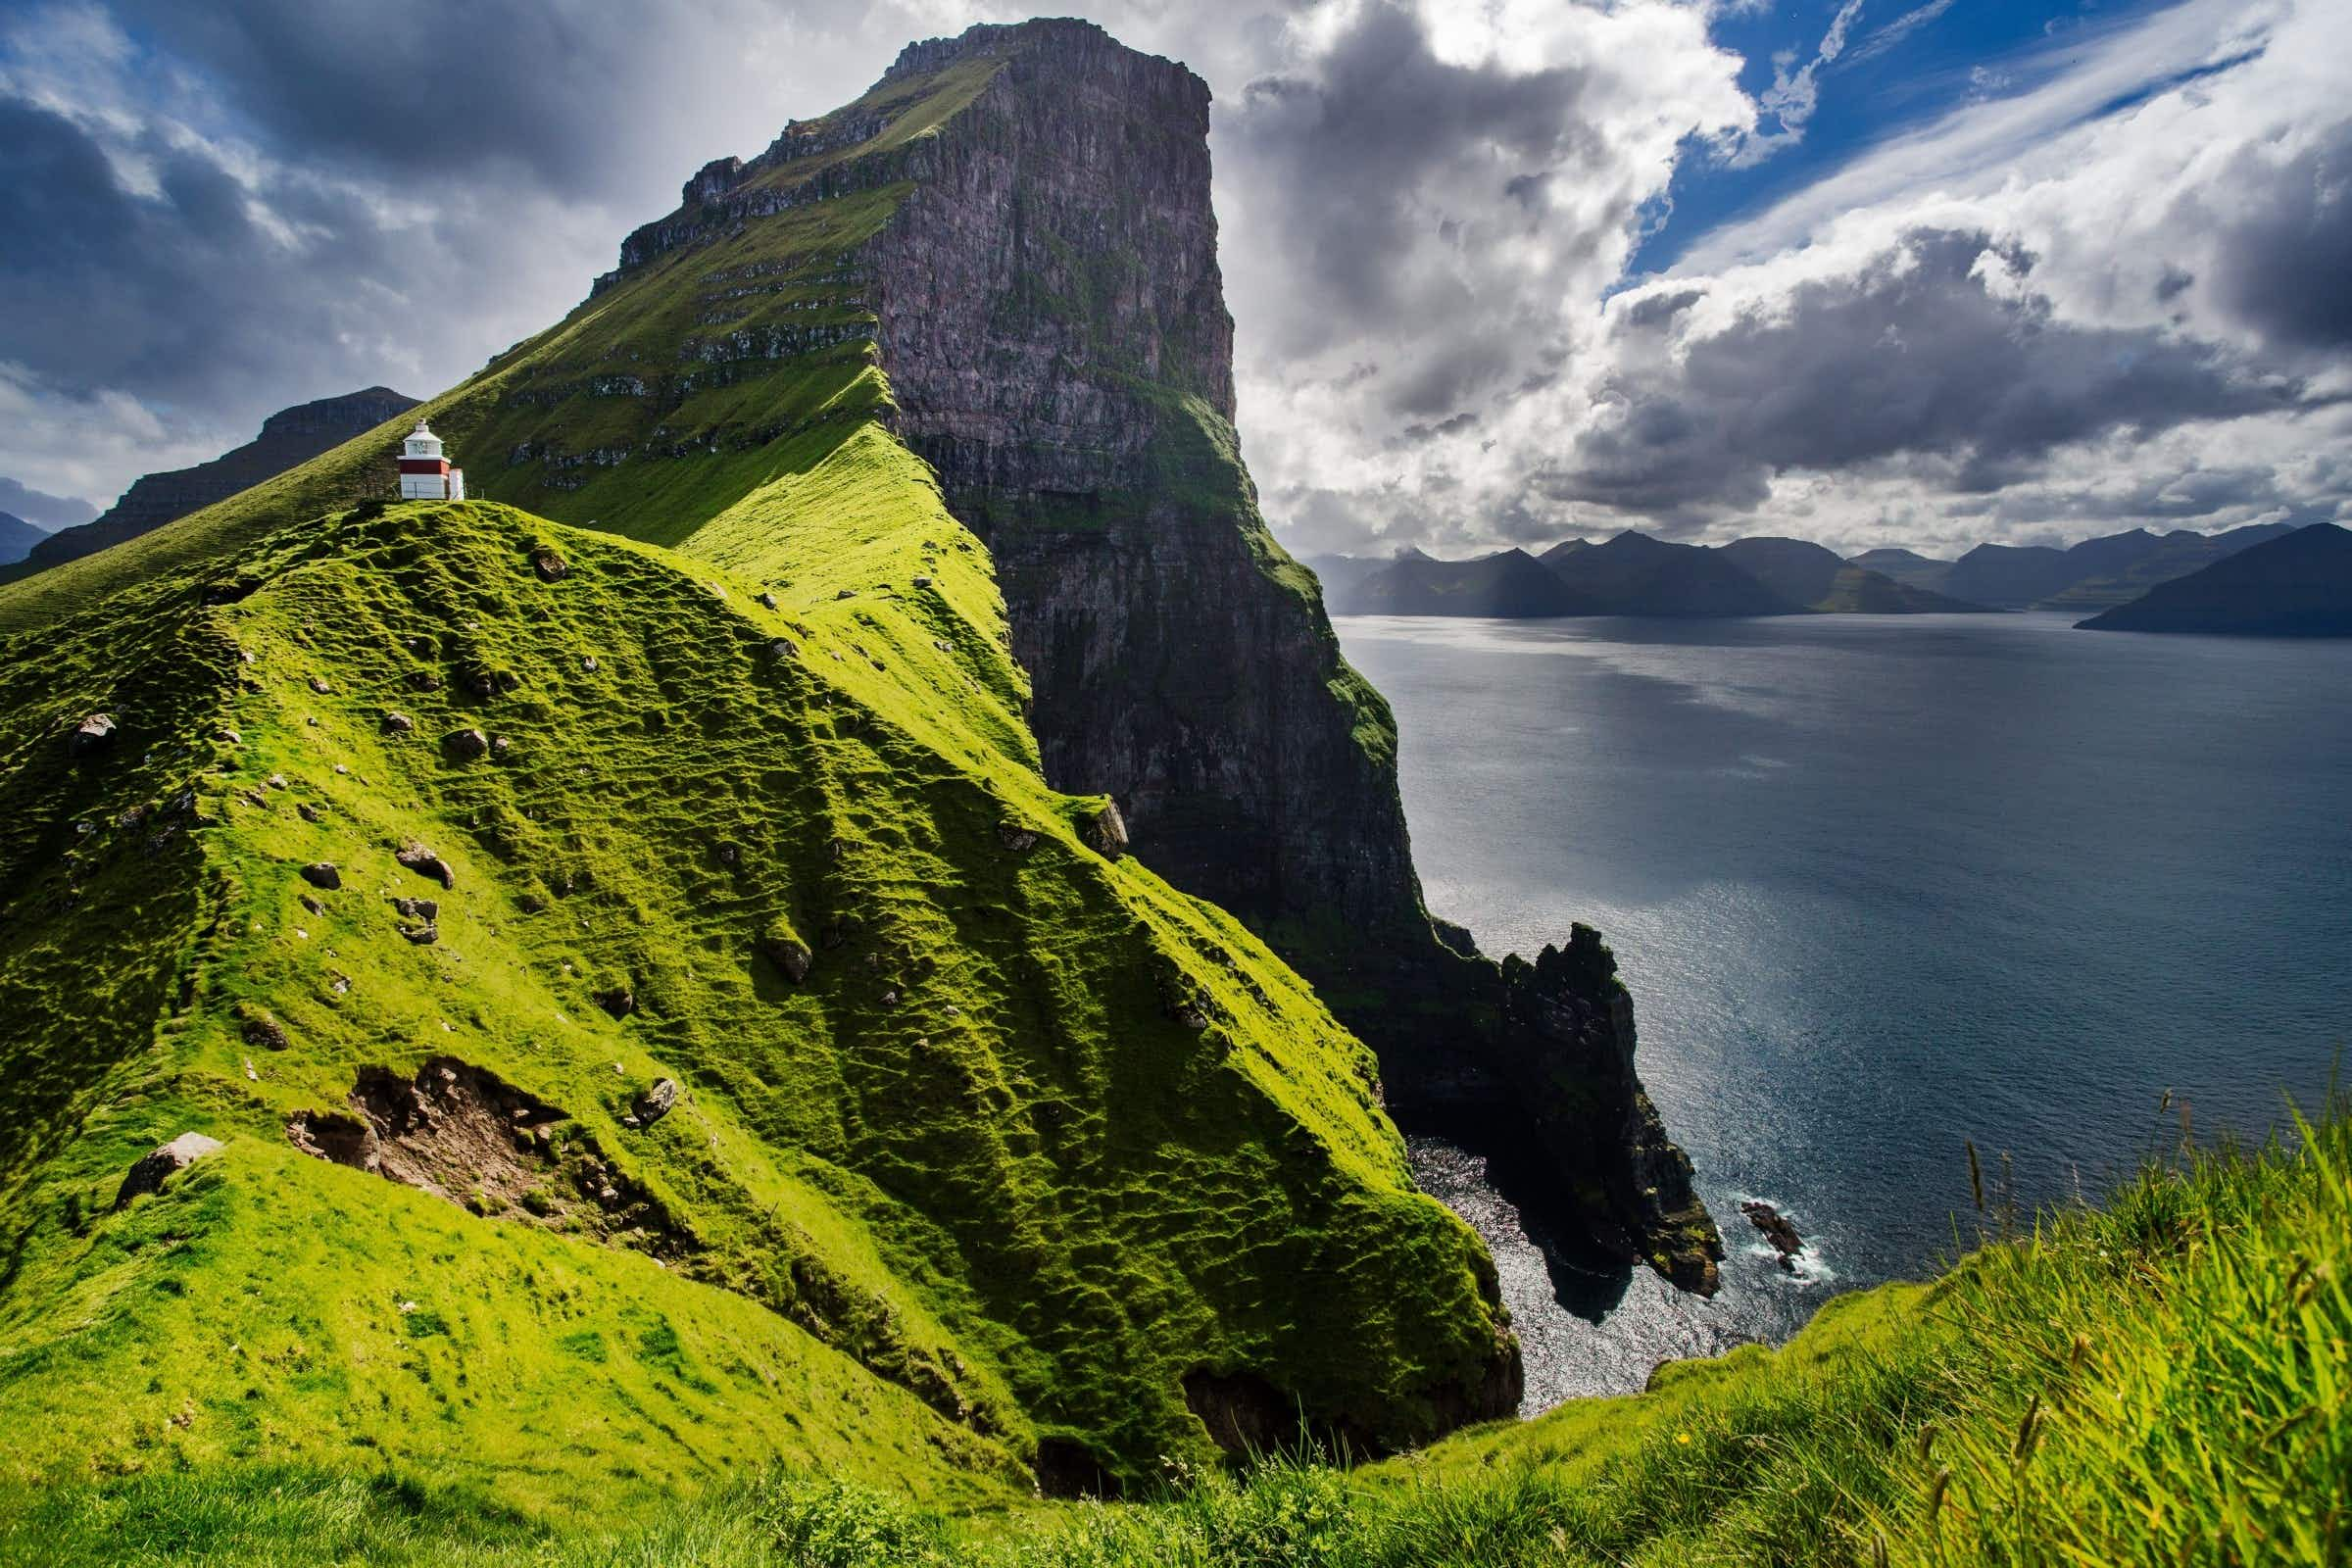 Scenes from the new James Bond film are being shot on Kalsoy Island in the Faroe Islands ©Federica Violin/Shutterstock